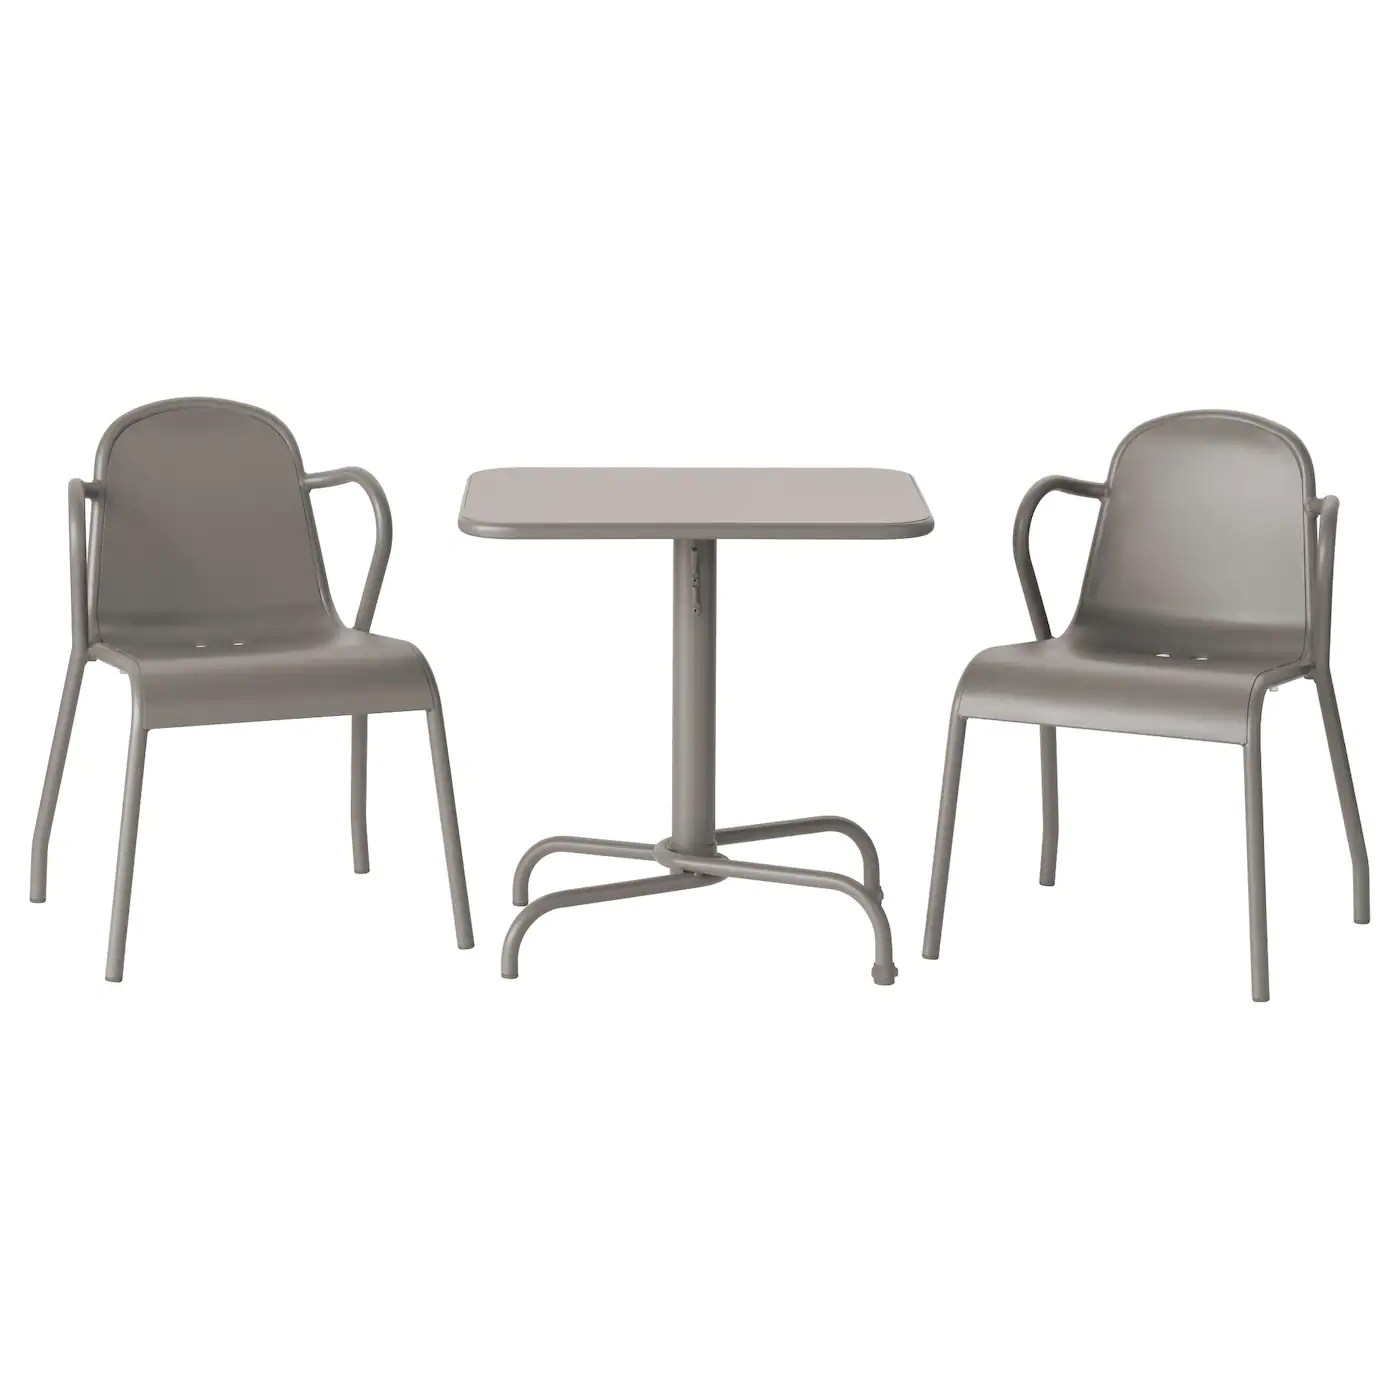 outside table and chairs for 2 purple gaming chair tunholmen 432 outdoor grey ikea